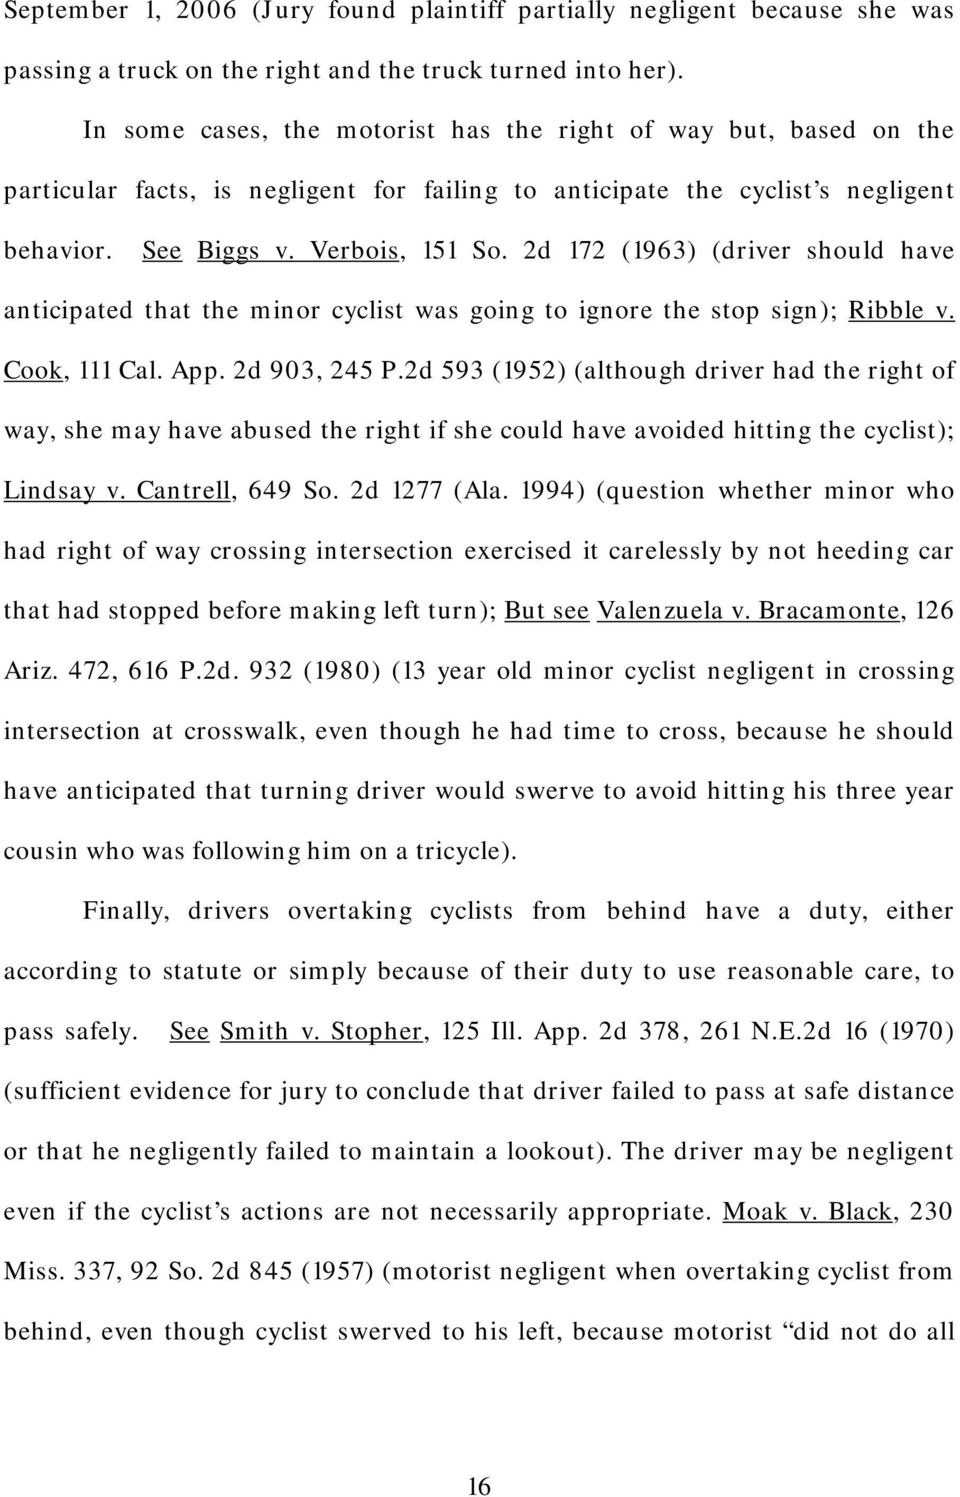 2d 172 (1963) (driver should have anticipated that the minor cyclist was going to ignore the stop sign); Ribble v. Cook, 111 Cal. App. 2d 903, 245 P.